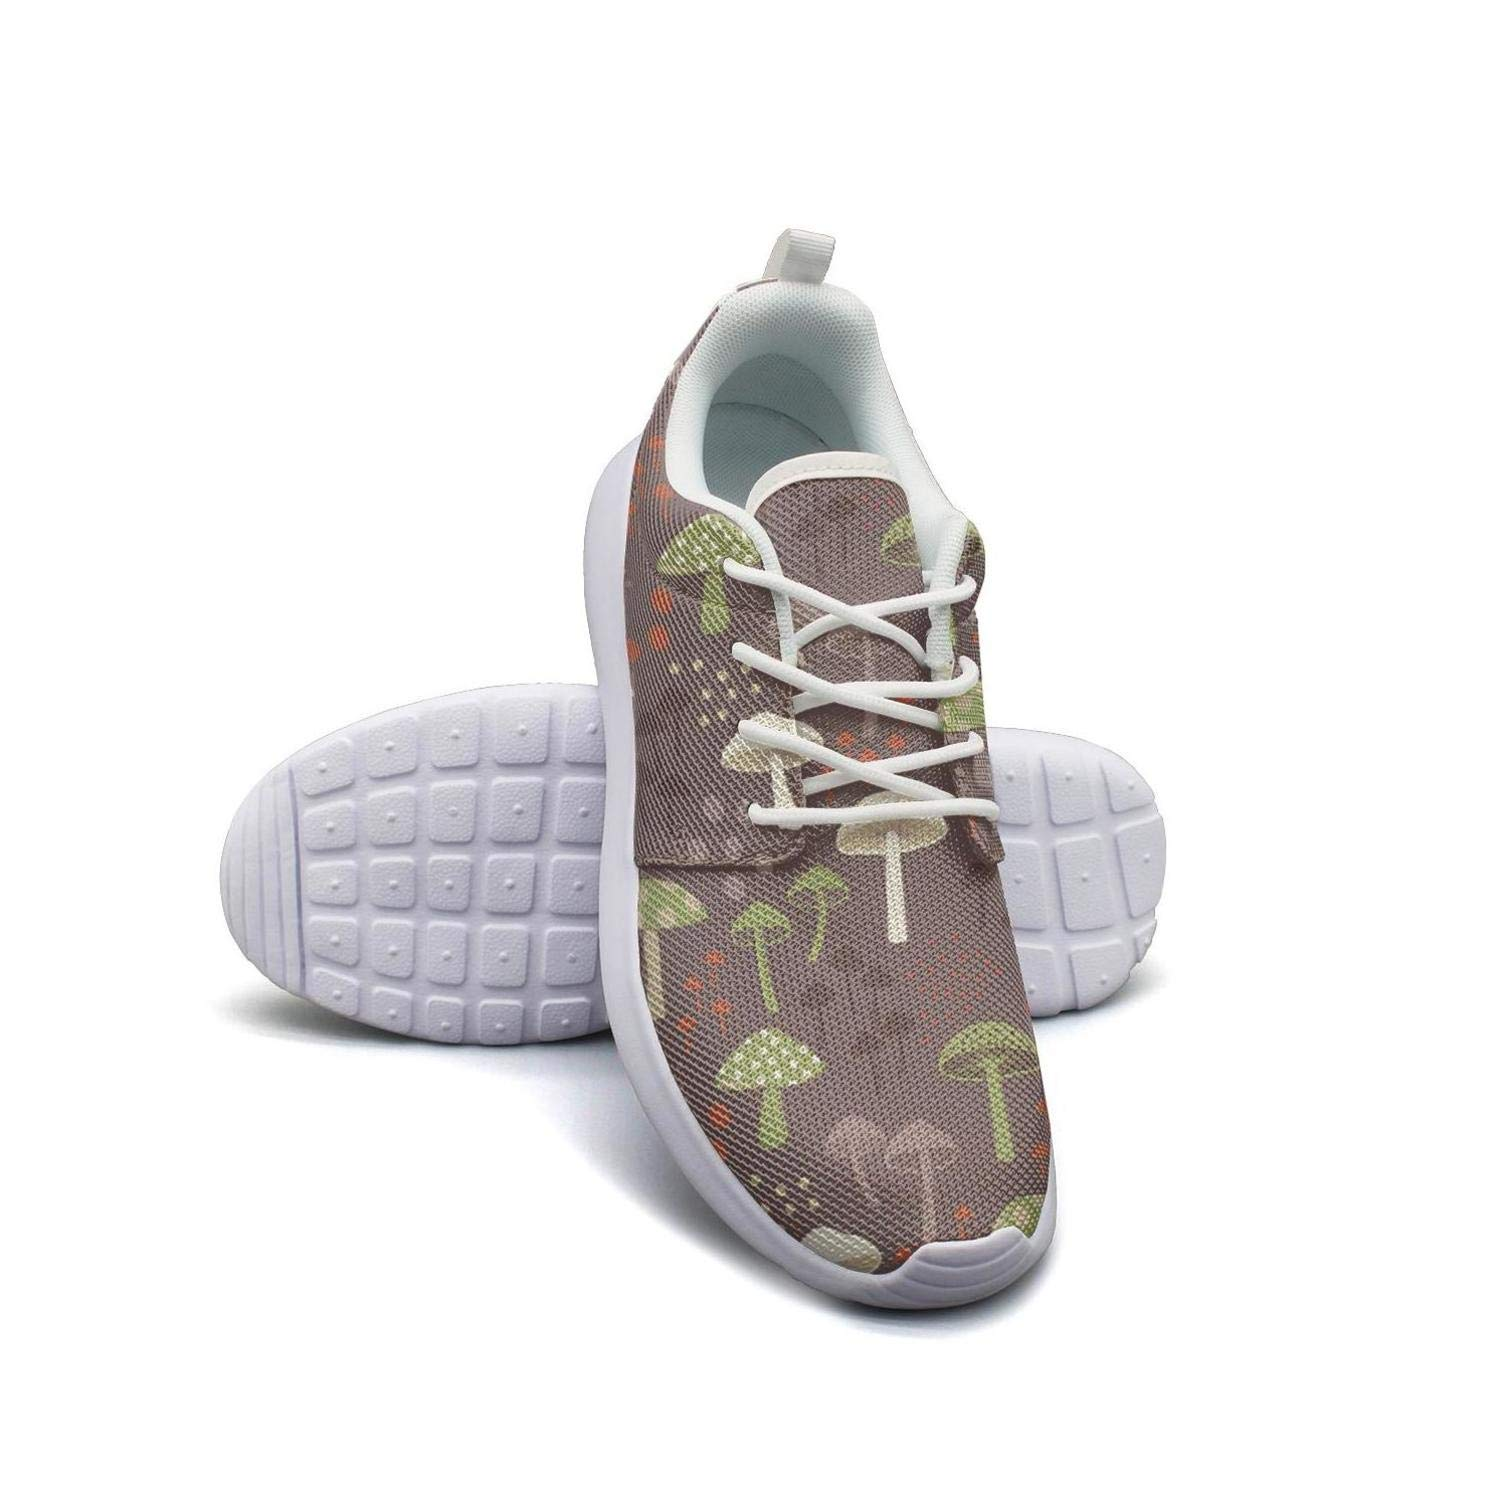 VXCVF Balck and White Mushroom Male Sneakers for Mens Comfortable and Lightweight Athletic